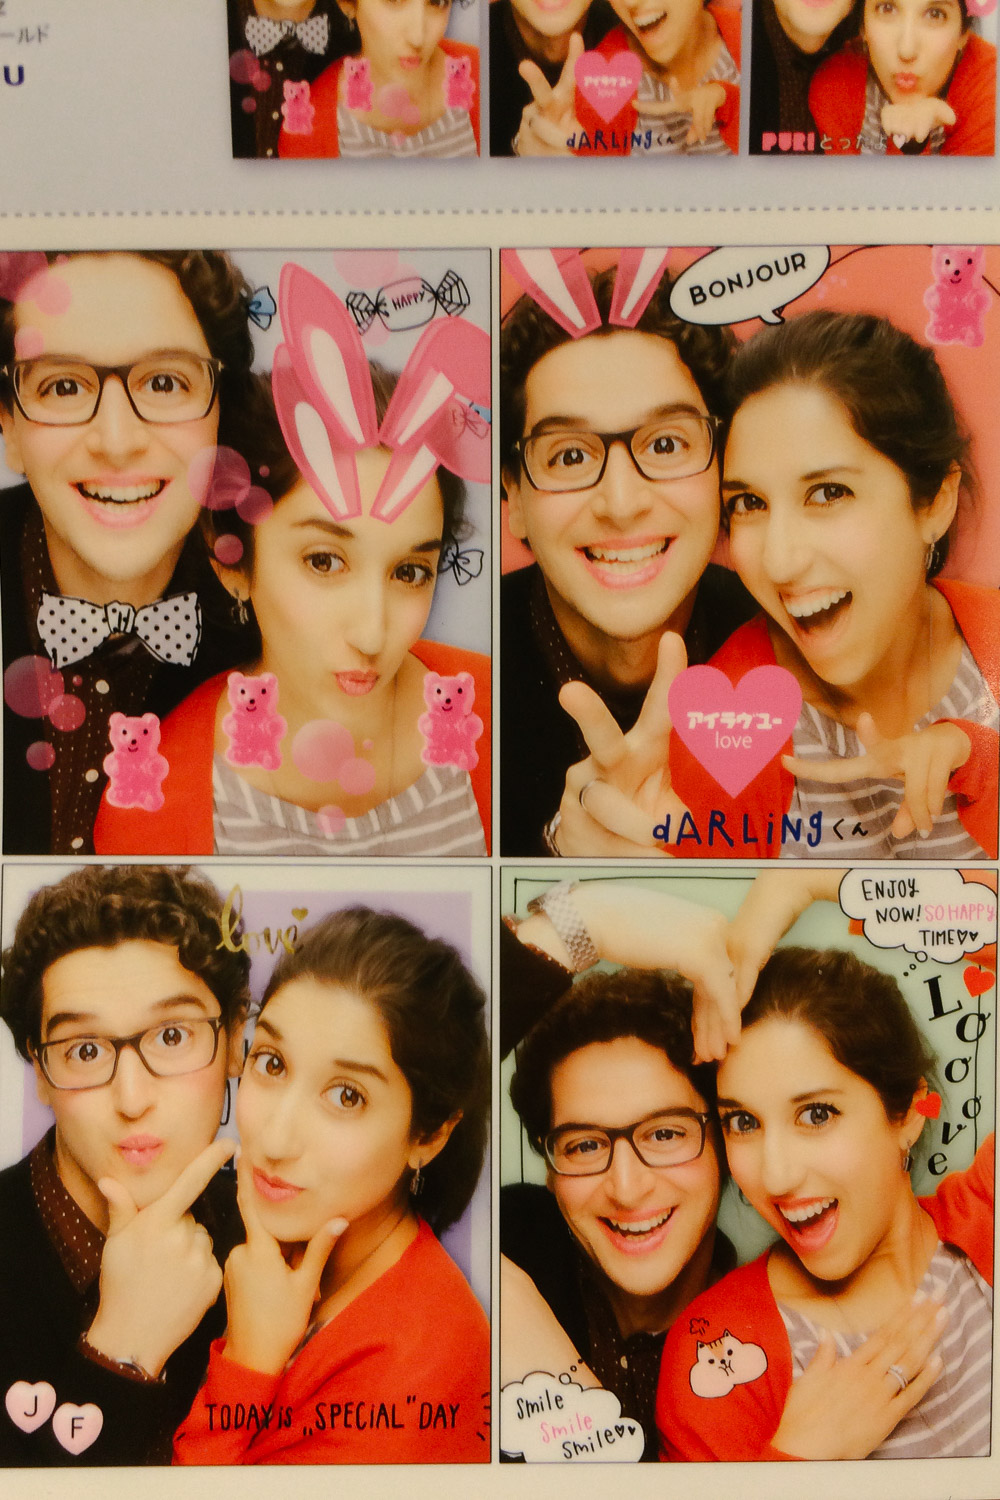 "Enjoying the purikura photobooth in Japan. Travel photography and guide by © Natasha Lequepeys for ""And Then I Met Yoko"". #japan #japanitinerary #tokyo #osaka #travelblog #travelphotography #landscapephotography #travelitinerary #fujifilm #kyoto #nara #oaska #travelguide #asia #foodphotography #japantravel #japanfood #ryokan #cherryblossom #springtravel"